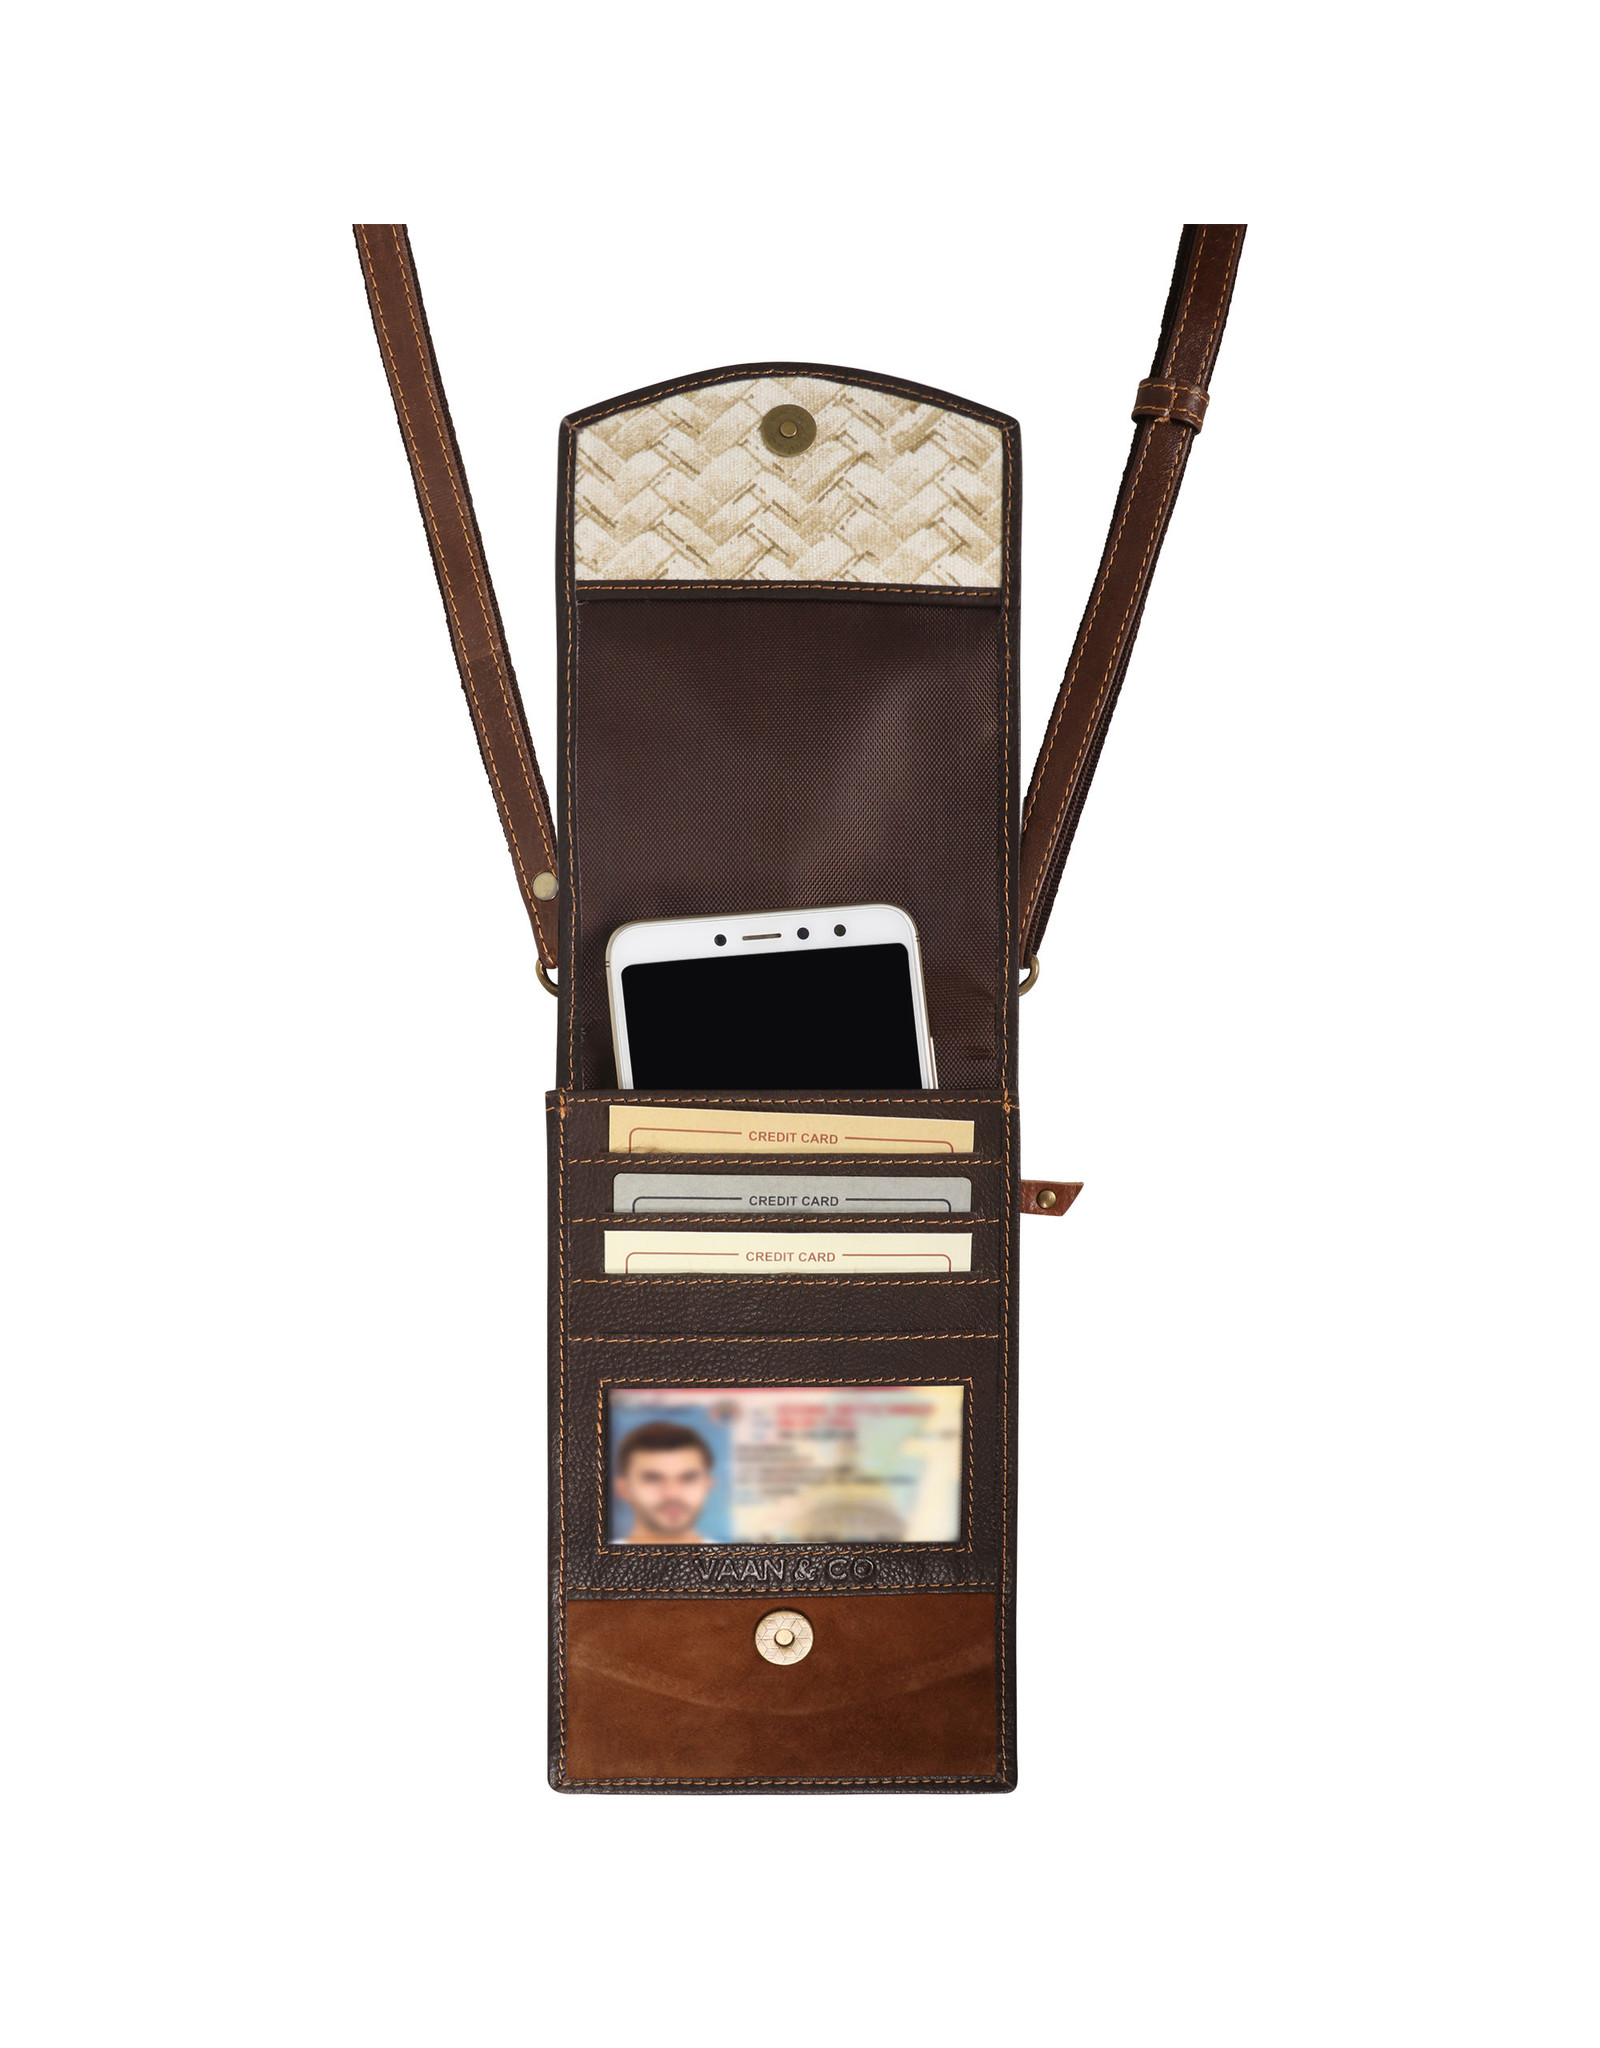 Vann & Co S2V-107 RFID Mobile Wallet Crossbody Bag